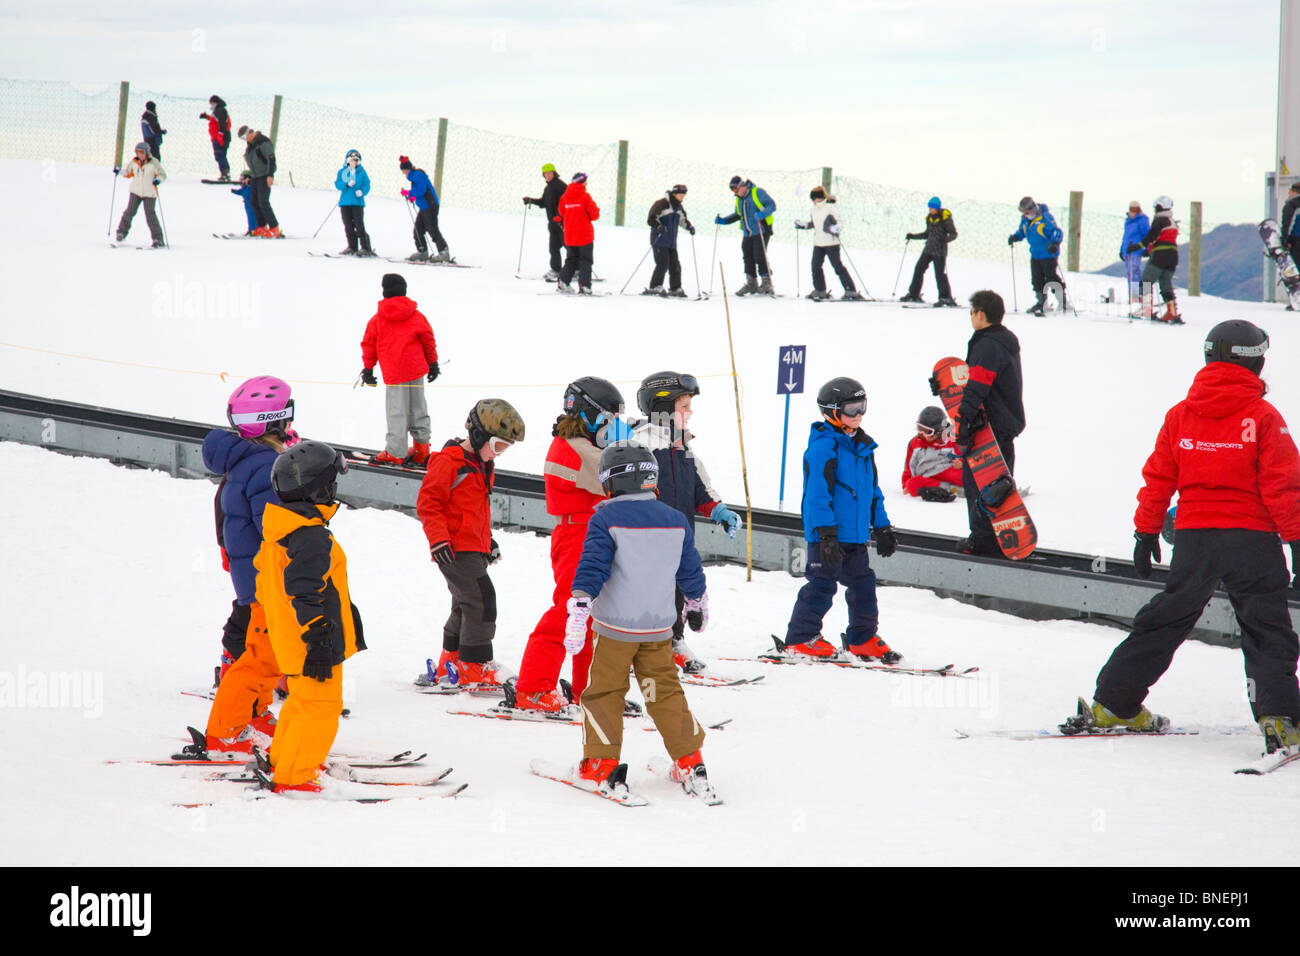 children with their ski instructor learning to ski at coronet peak ski resort whilst other learners travel on the - Stock Image